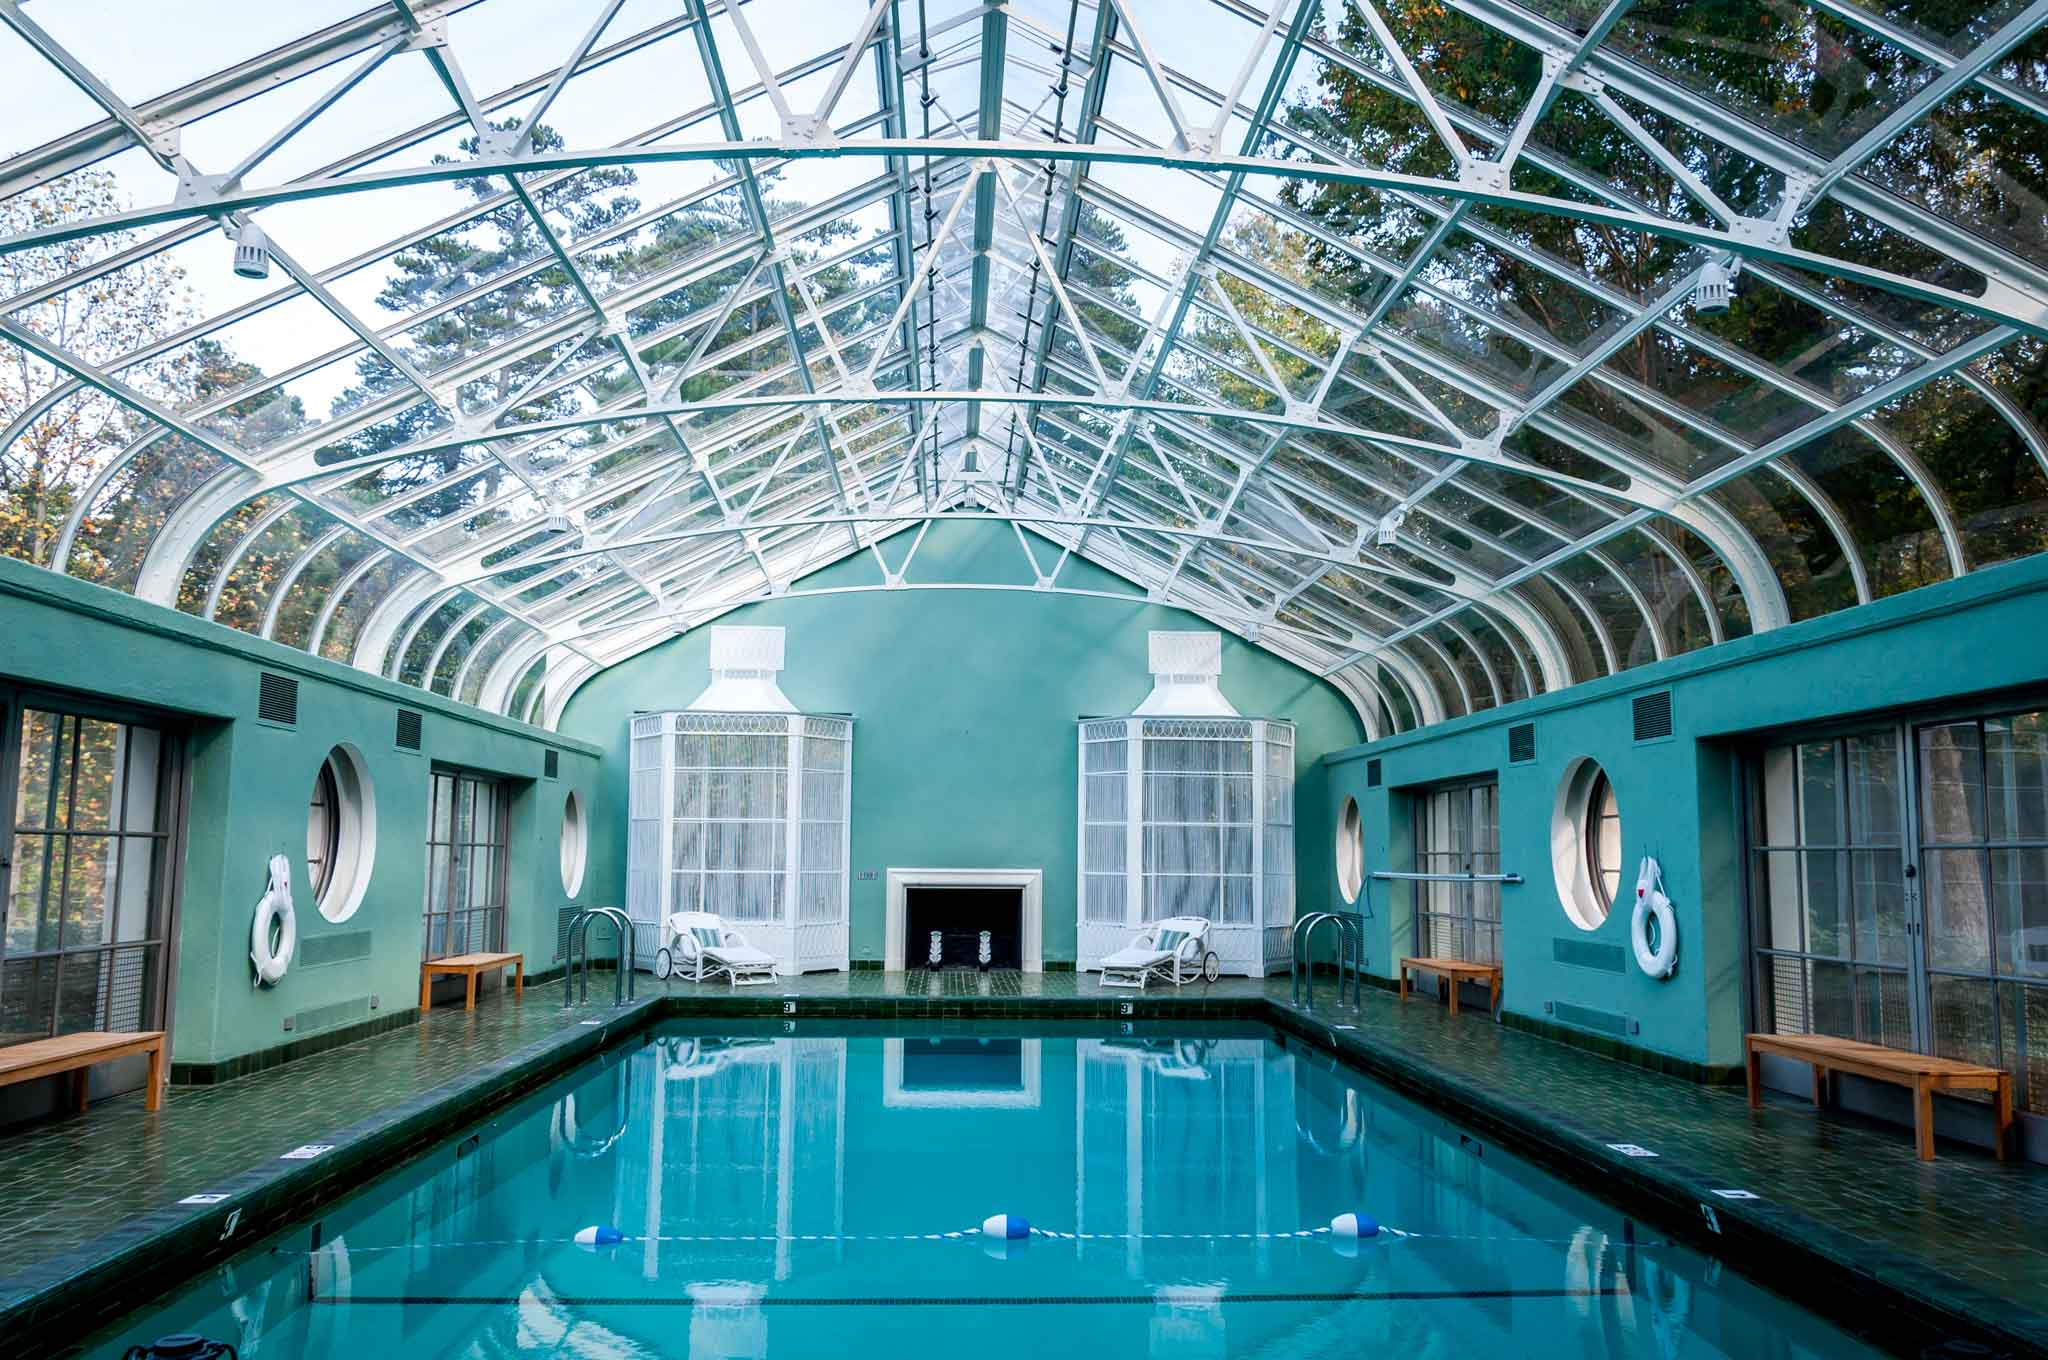 Indoor pool in room with a glass ceiling